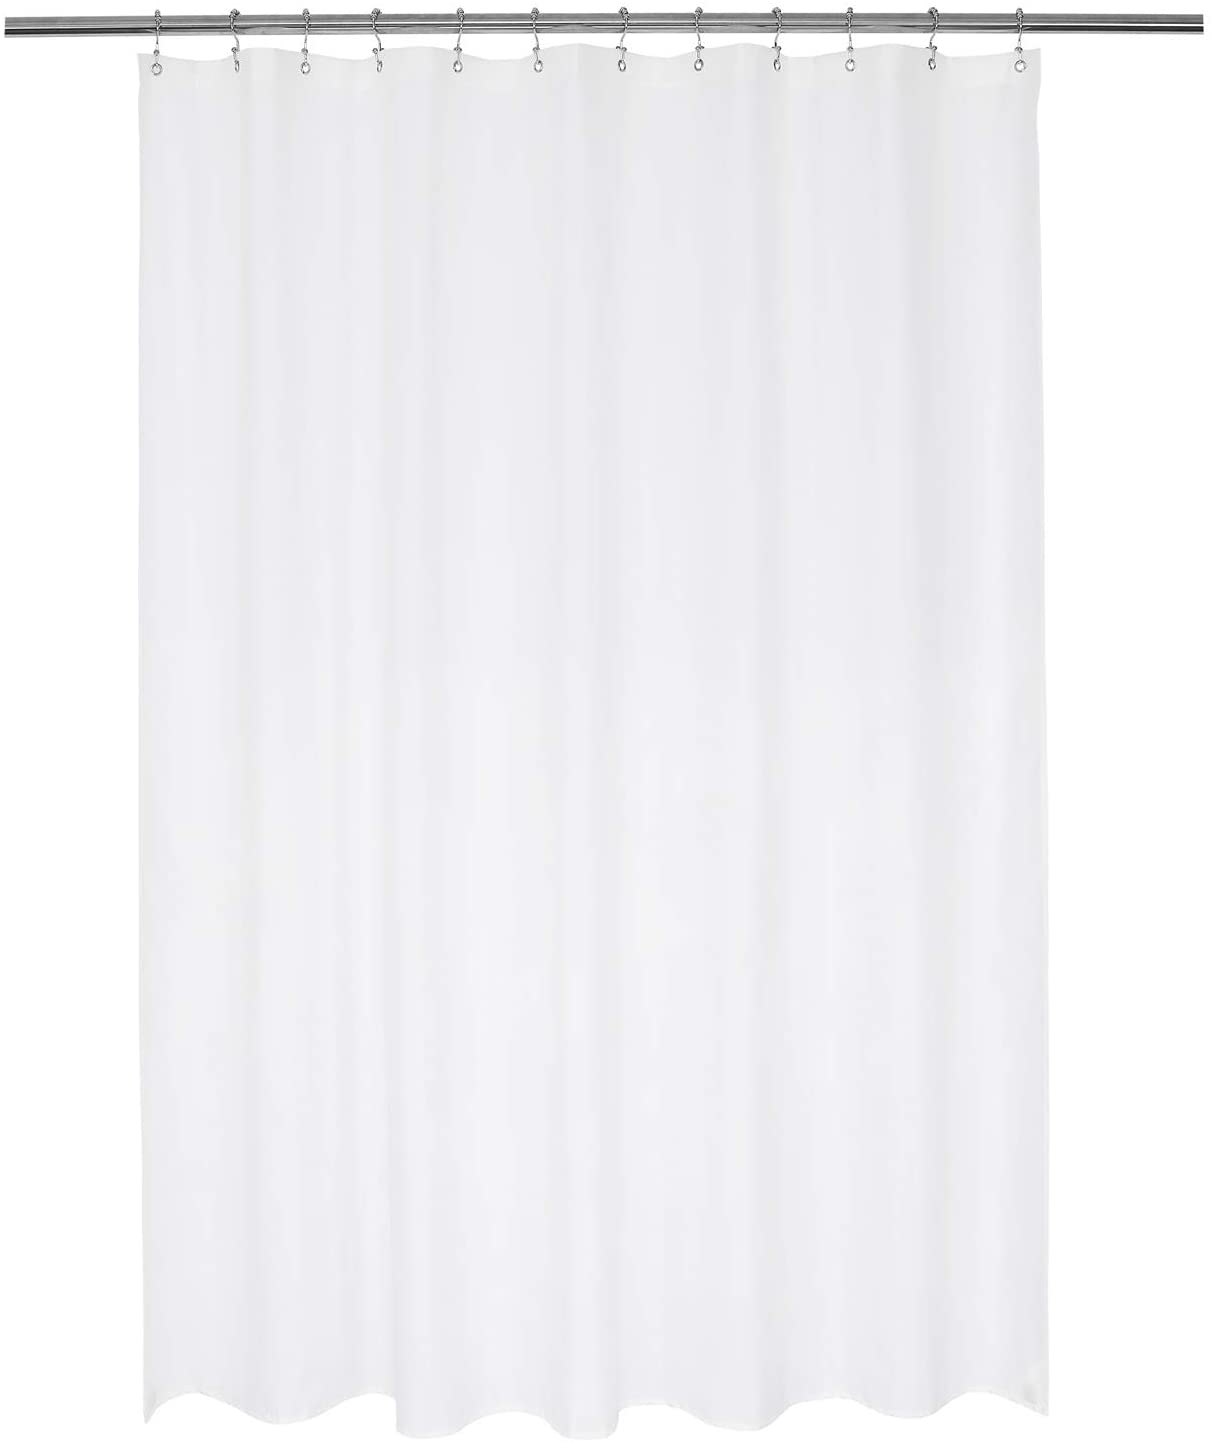 N&Y HOME Nylon Hotel Shower Curtain or Liner, Machine Washable, Water Resistant, White, 72 x 72 inches